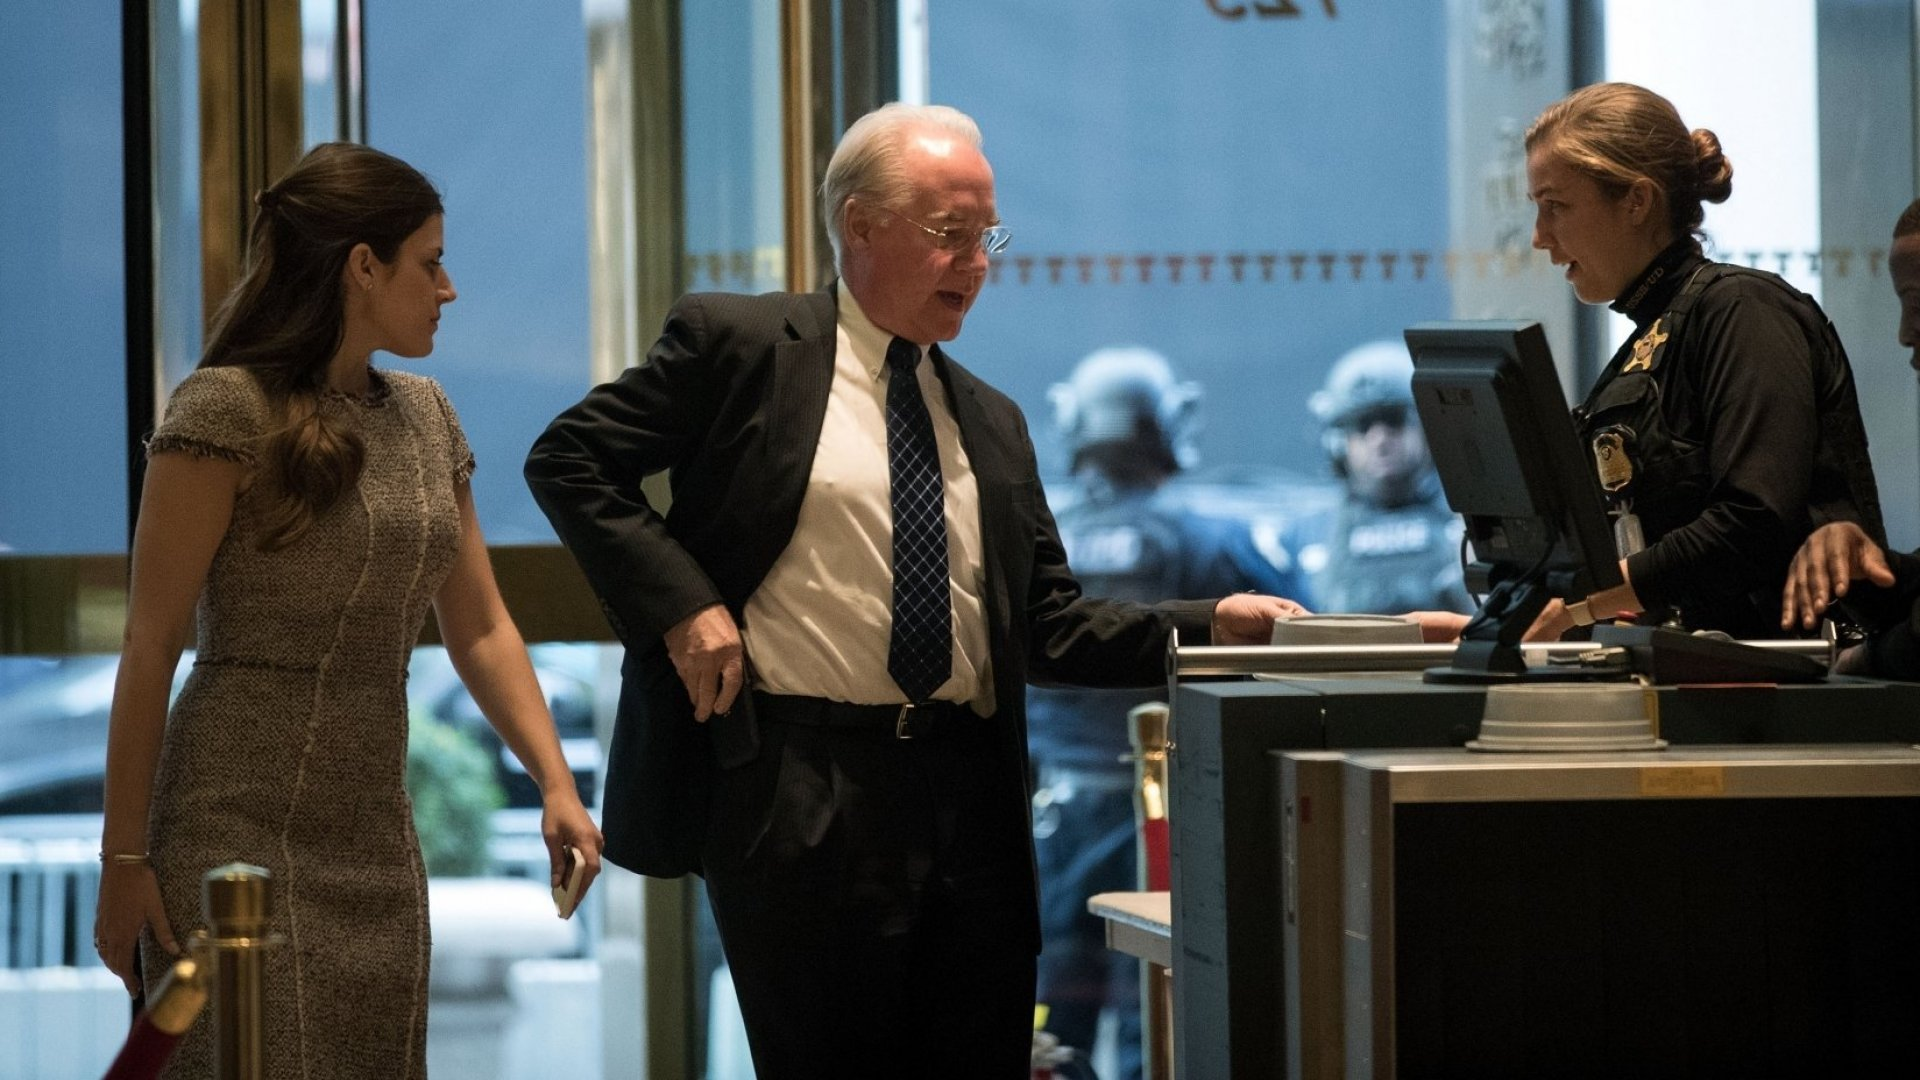 Tom Price arrives at Trump Tower for a meeting with the president-elect.